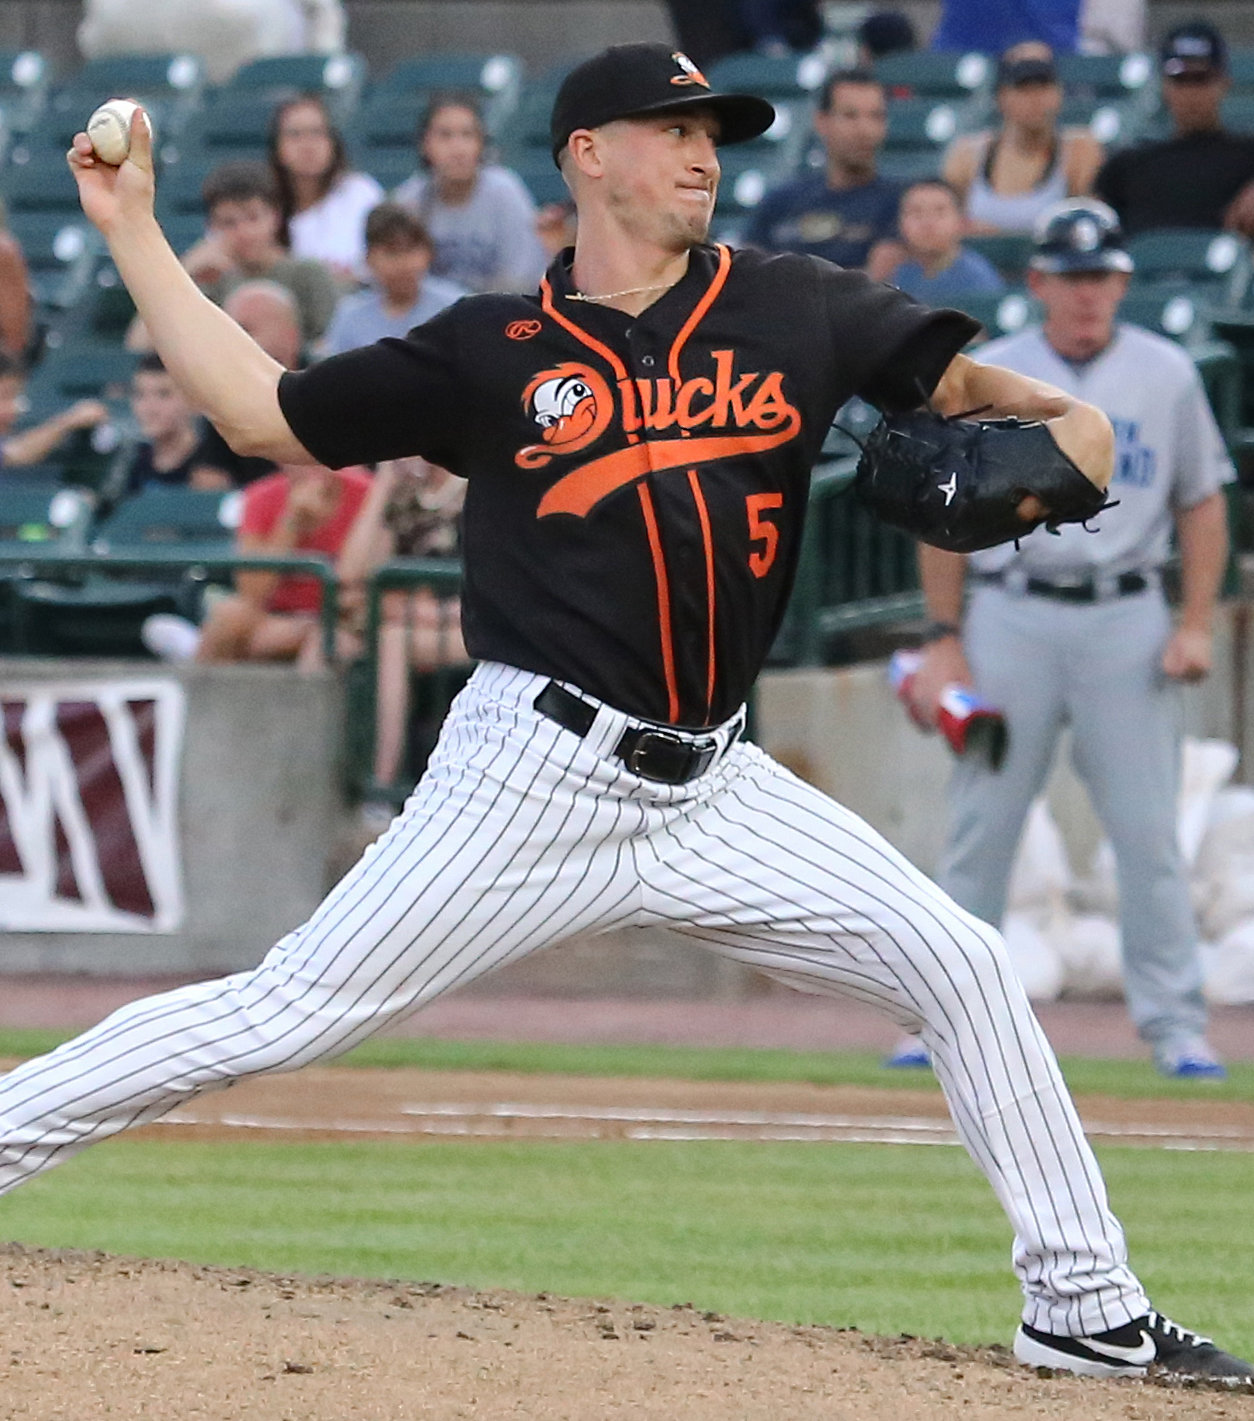 Joe Iorio made a smooth transition from the bullpen to the starting rotation for the Ducks, who had 10 pitchers sign contracts with MLB or professional teams outside of the U.S.